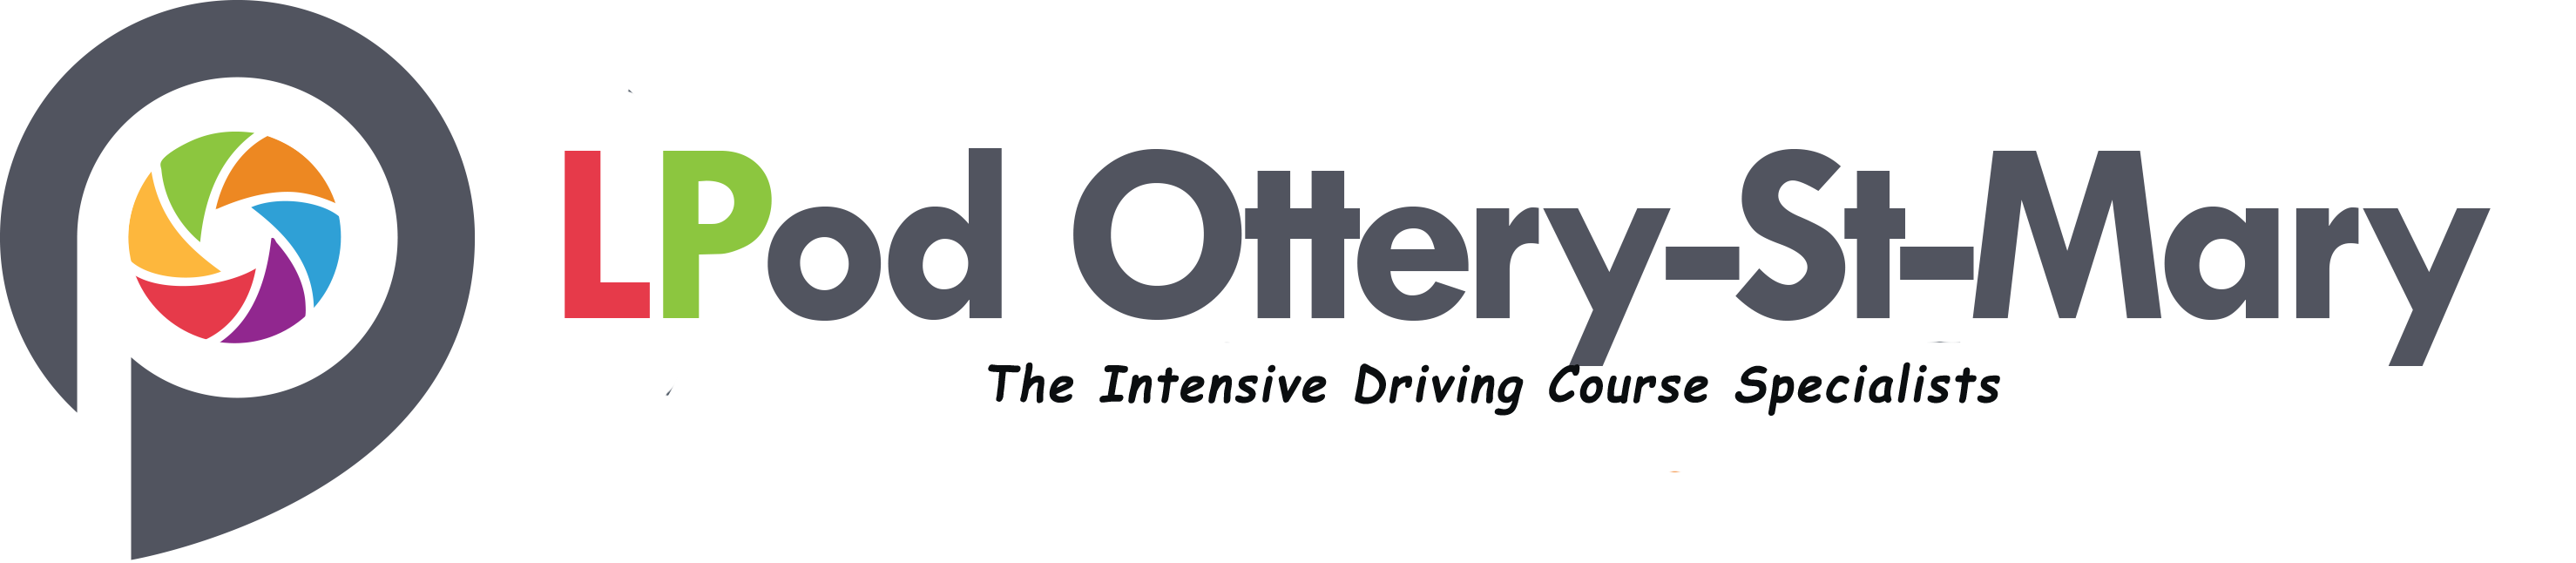 Intensive driving courses Ottery St Mary